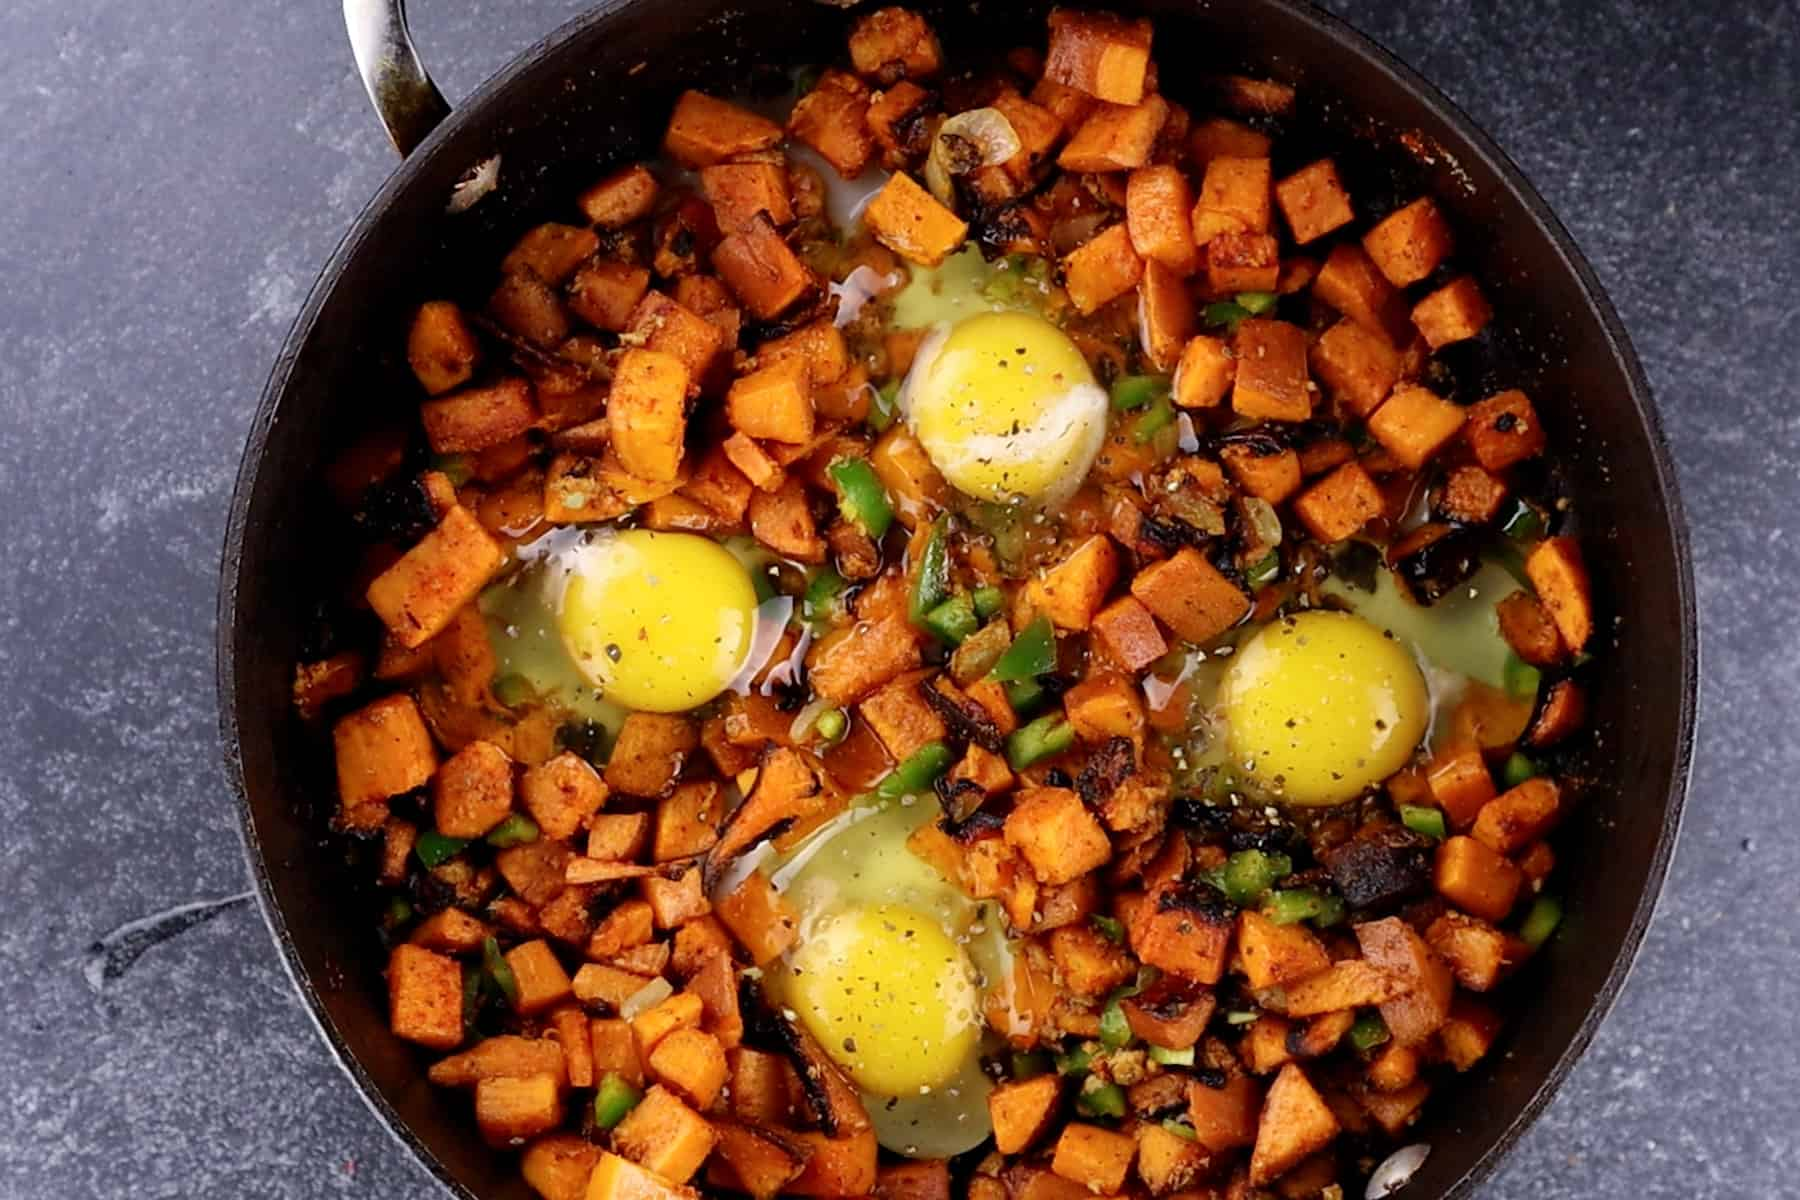 eggs added to skillet